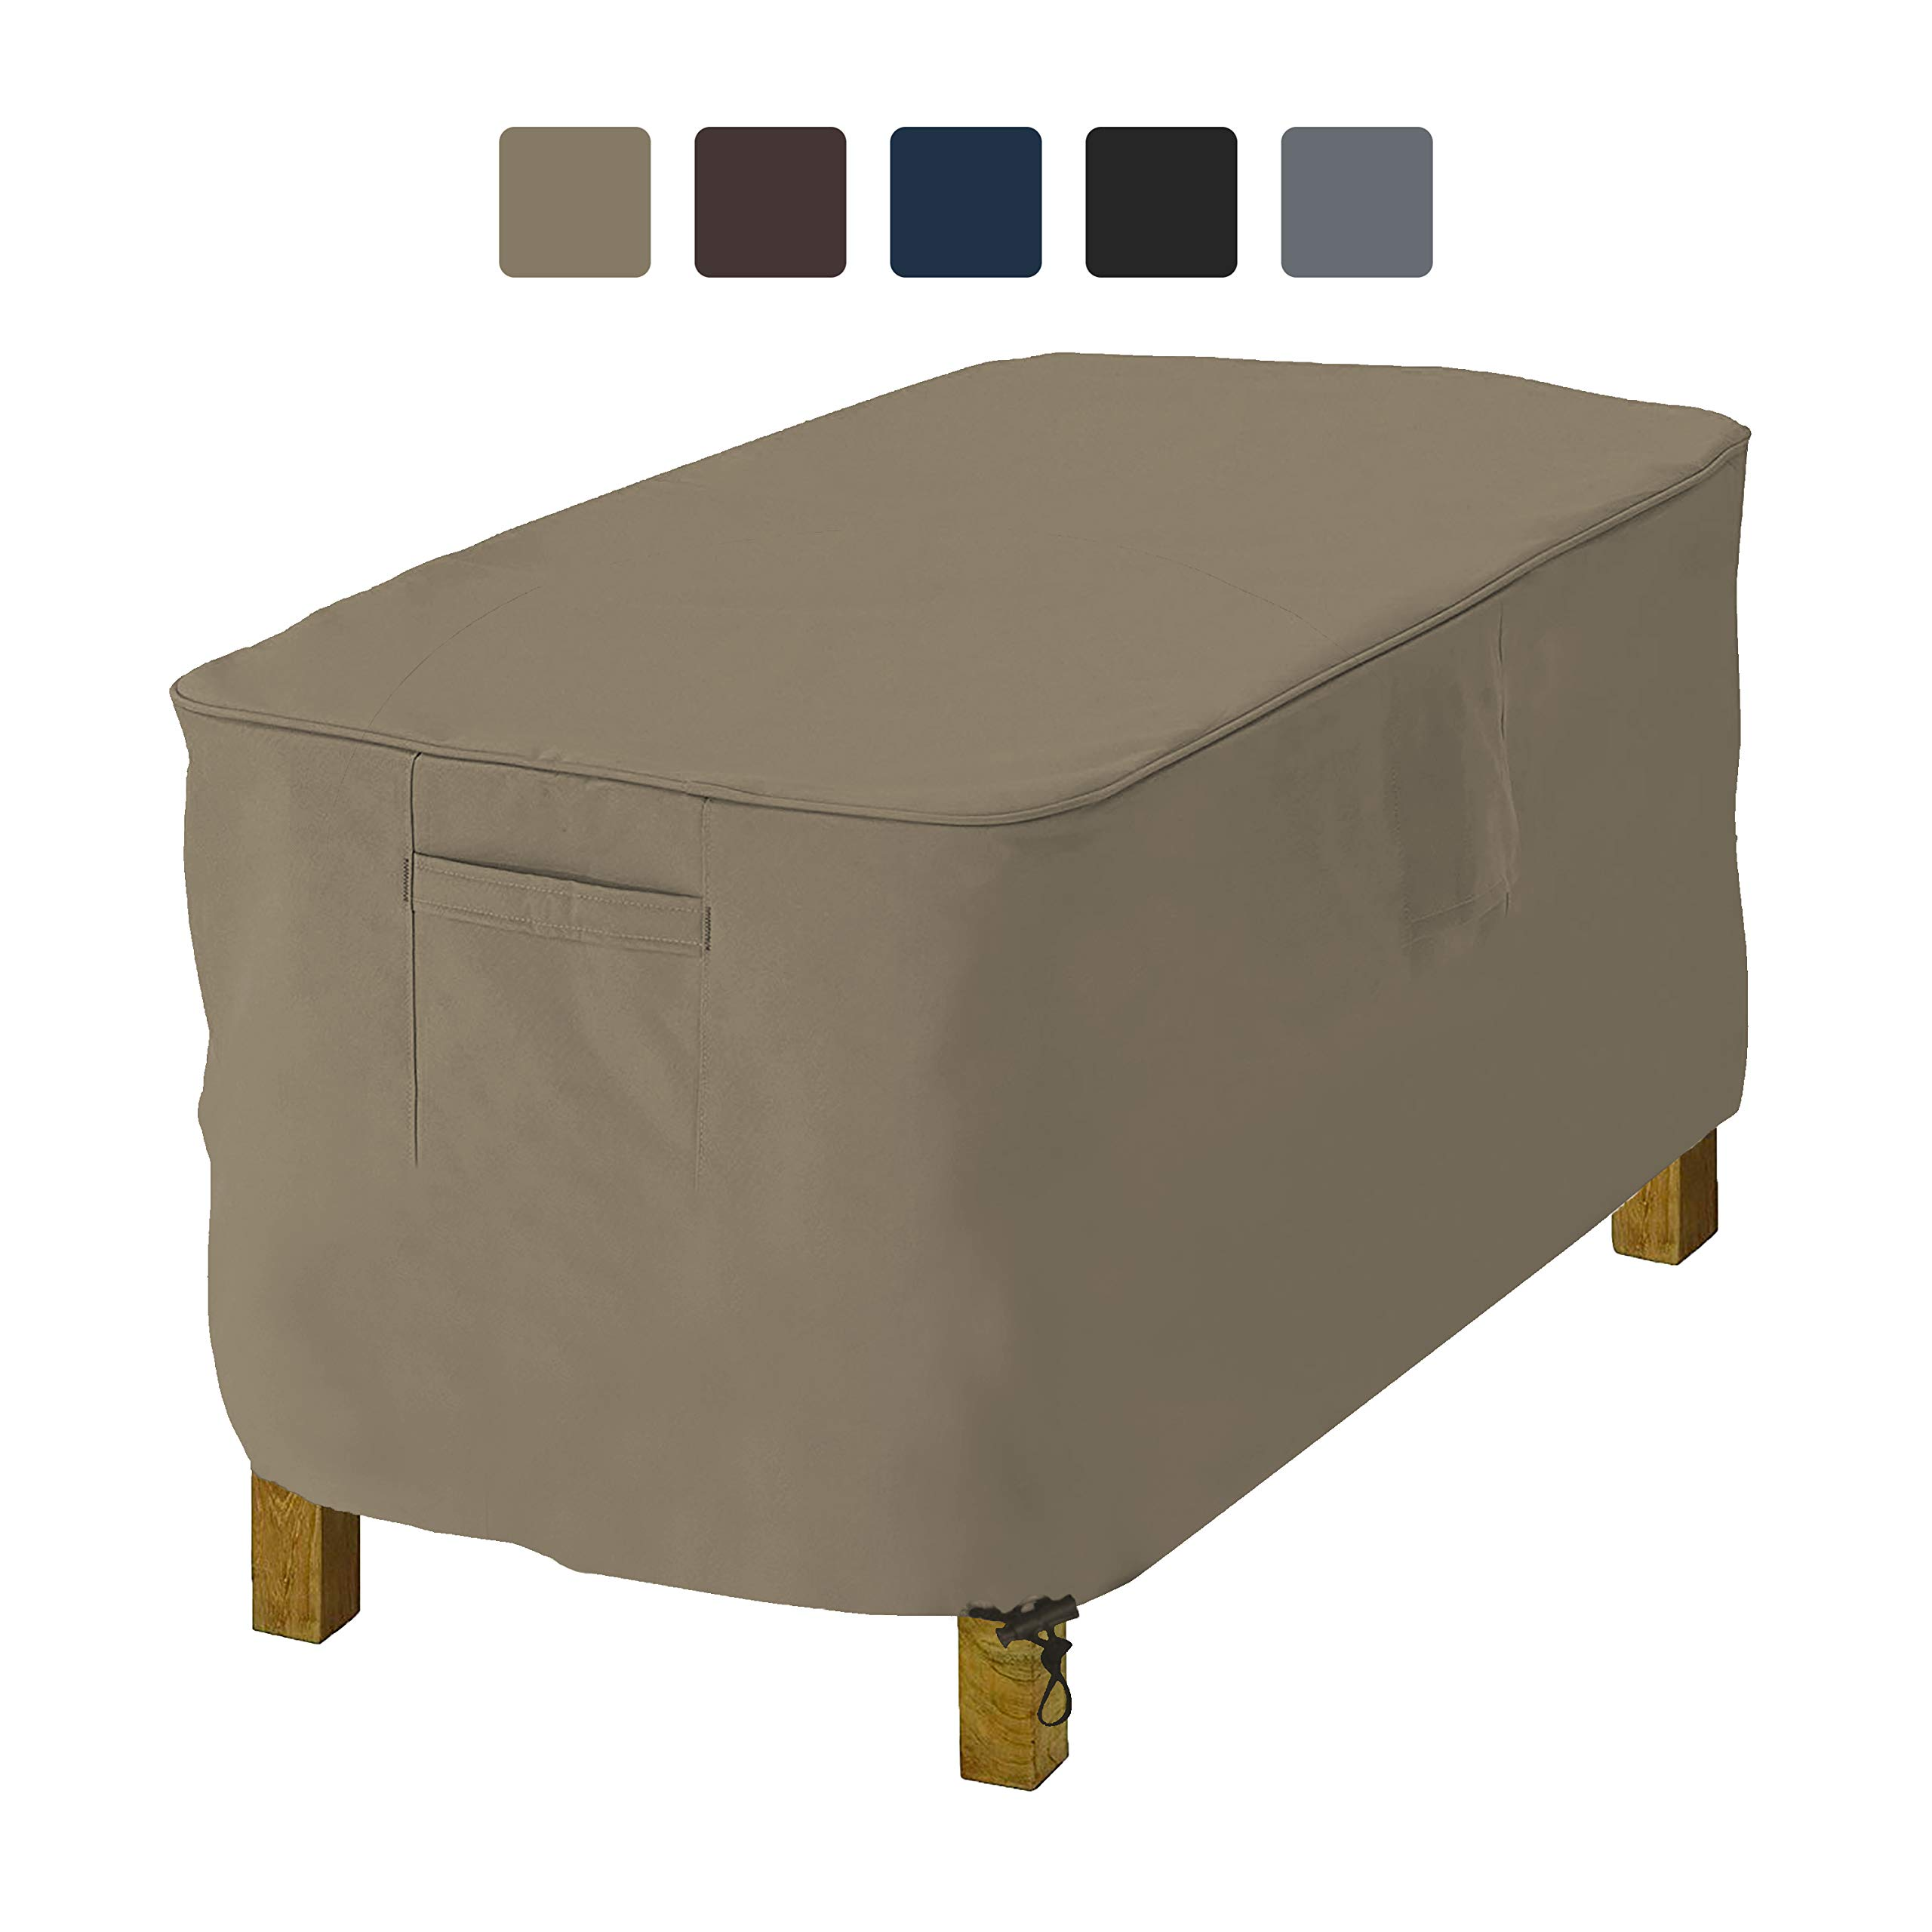 COVERS & ALL Rectangle Ottoman Cover 12 Oz Waterproof - 100% UV & Weather Resistant Outdoor Ottoman Cover with Air Pockets & Drawstring for Snug Fit (25'' W x 48'' L x 18'' H, Beige) by COVERS & ALL